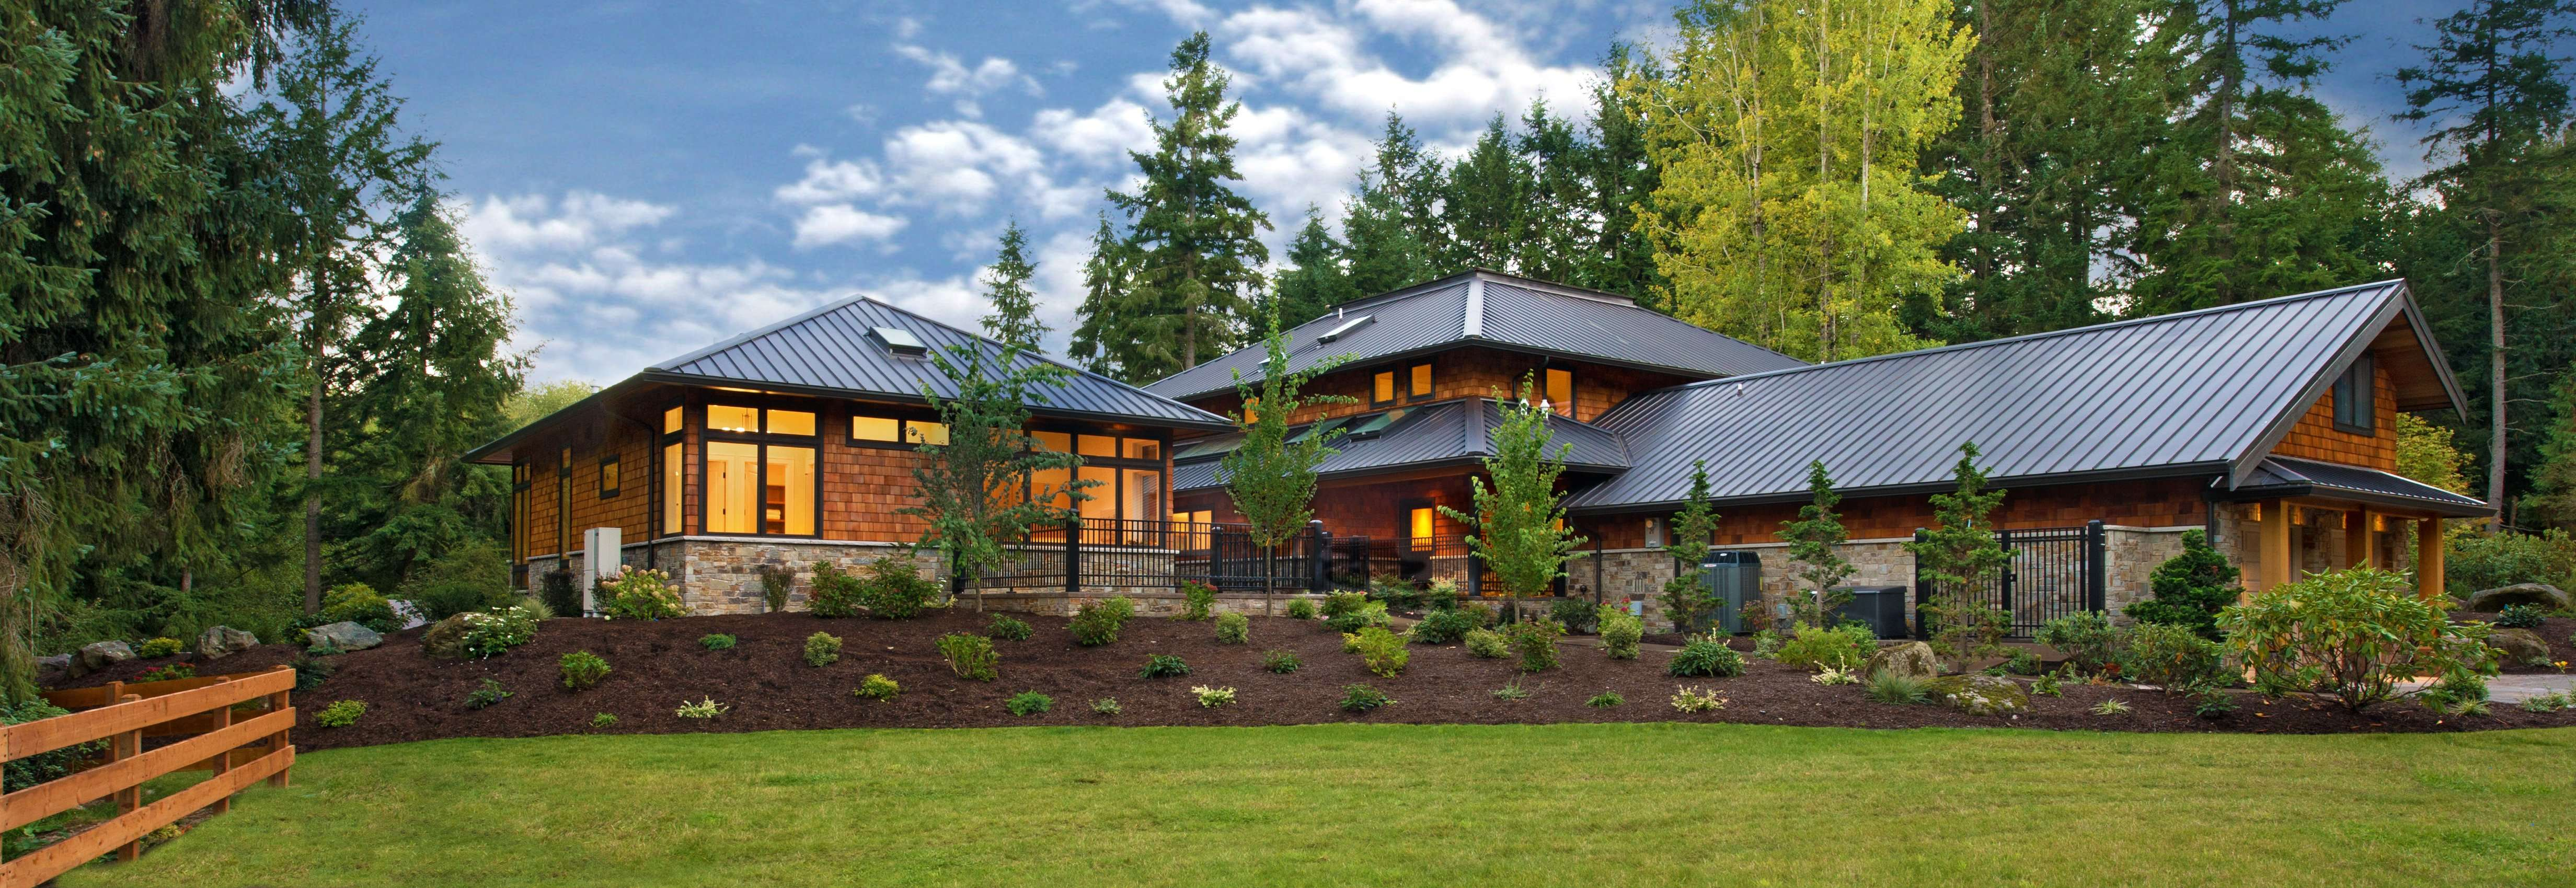 Gallery of residential architecture and interior design projects photographed by Seattle photographer Nick Felkey